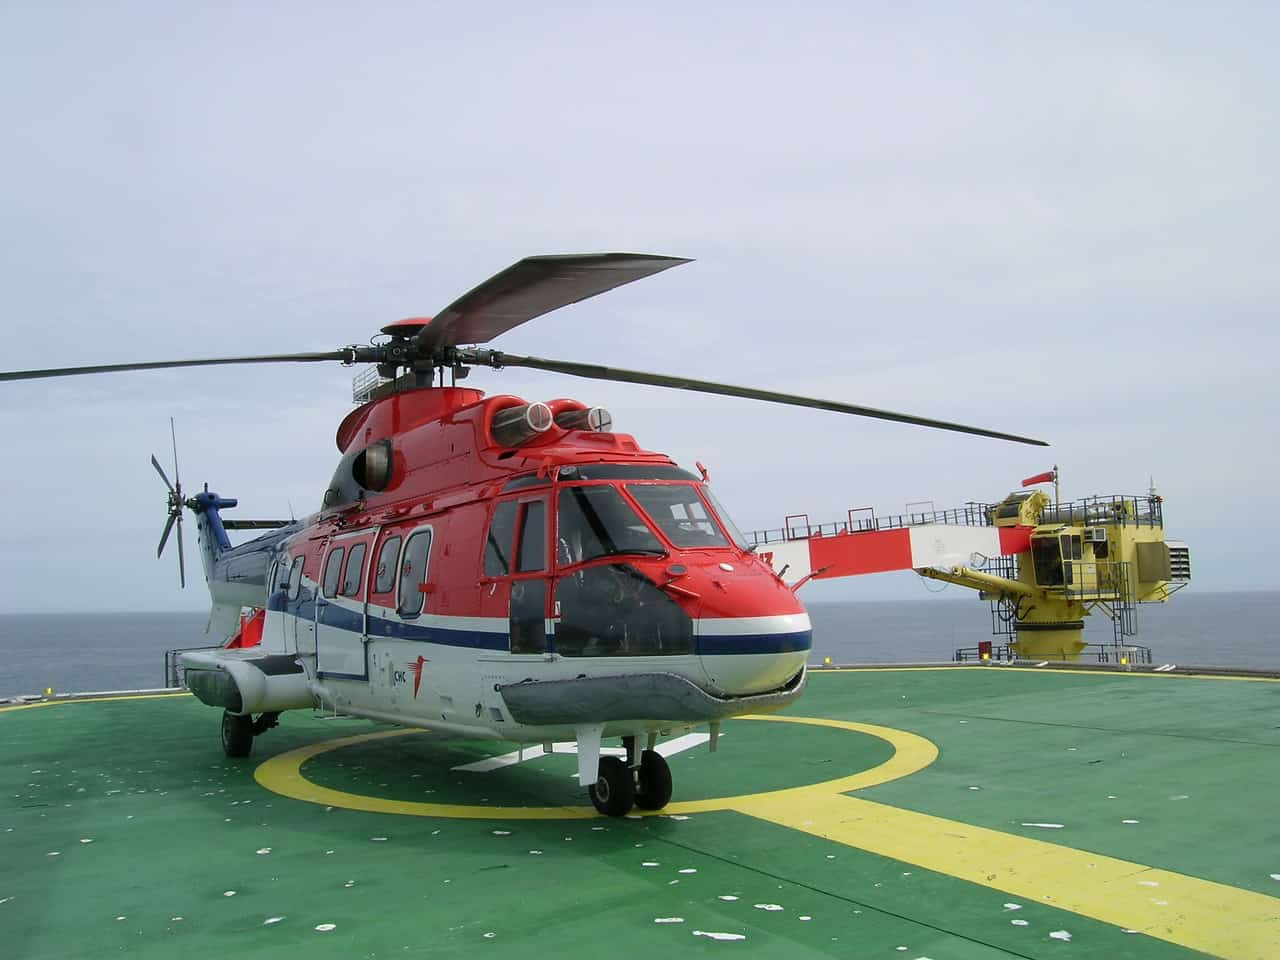 Superpuma Helicopter on an Offshore Oil Rig